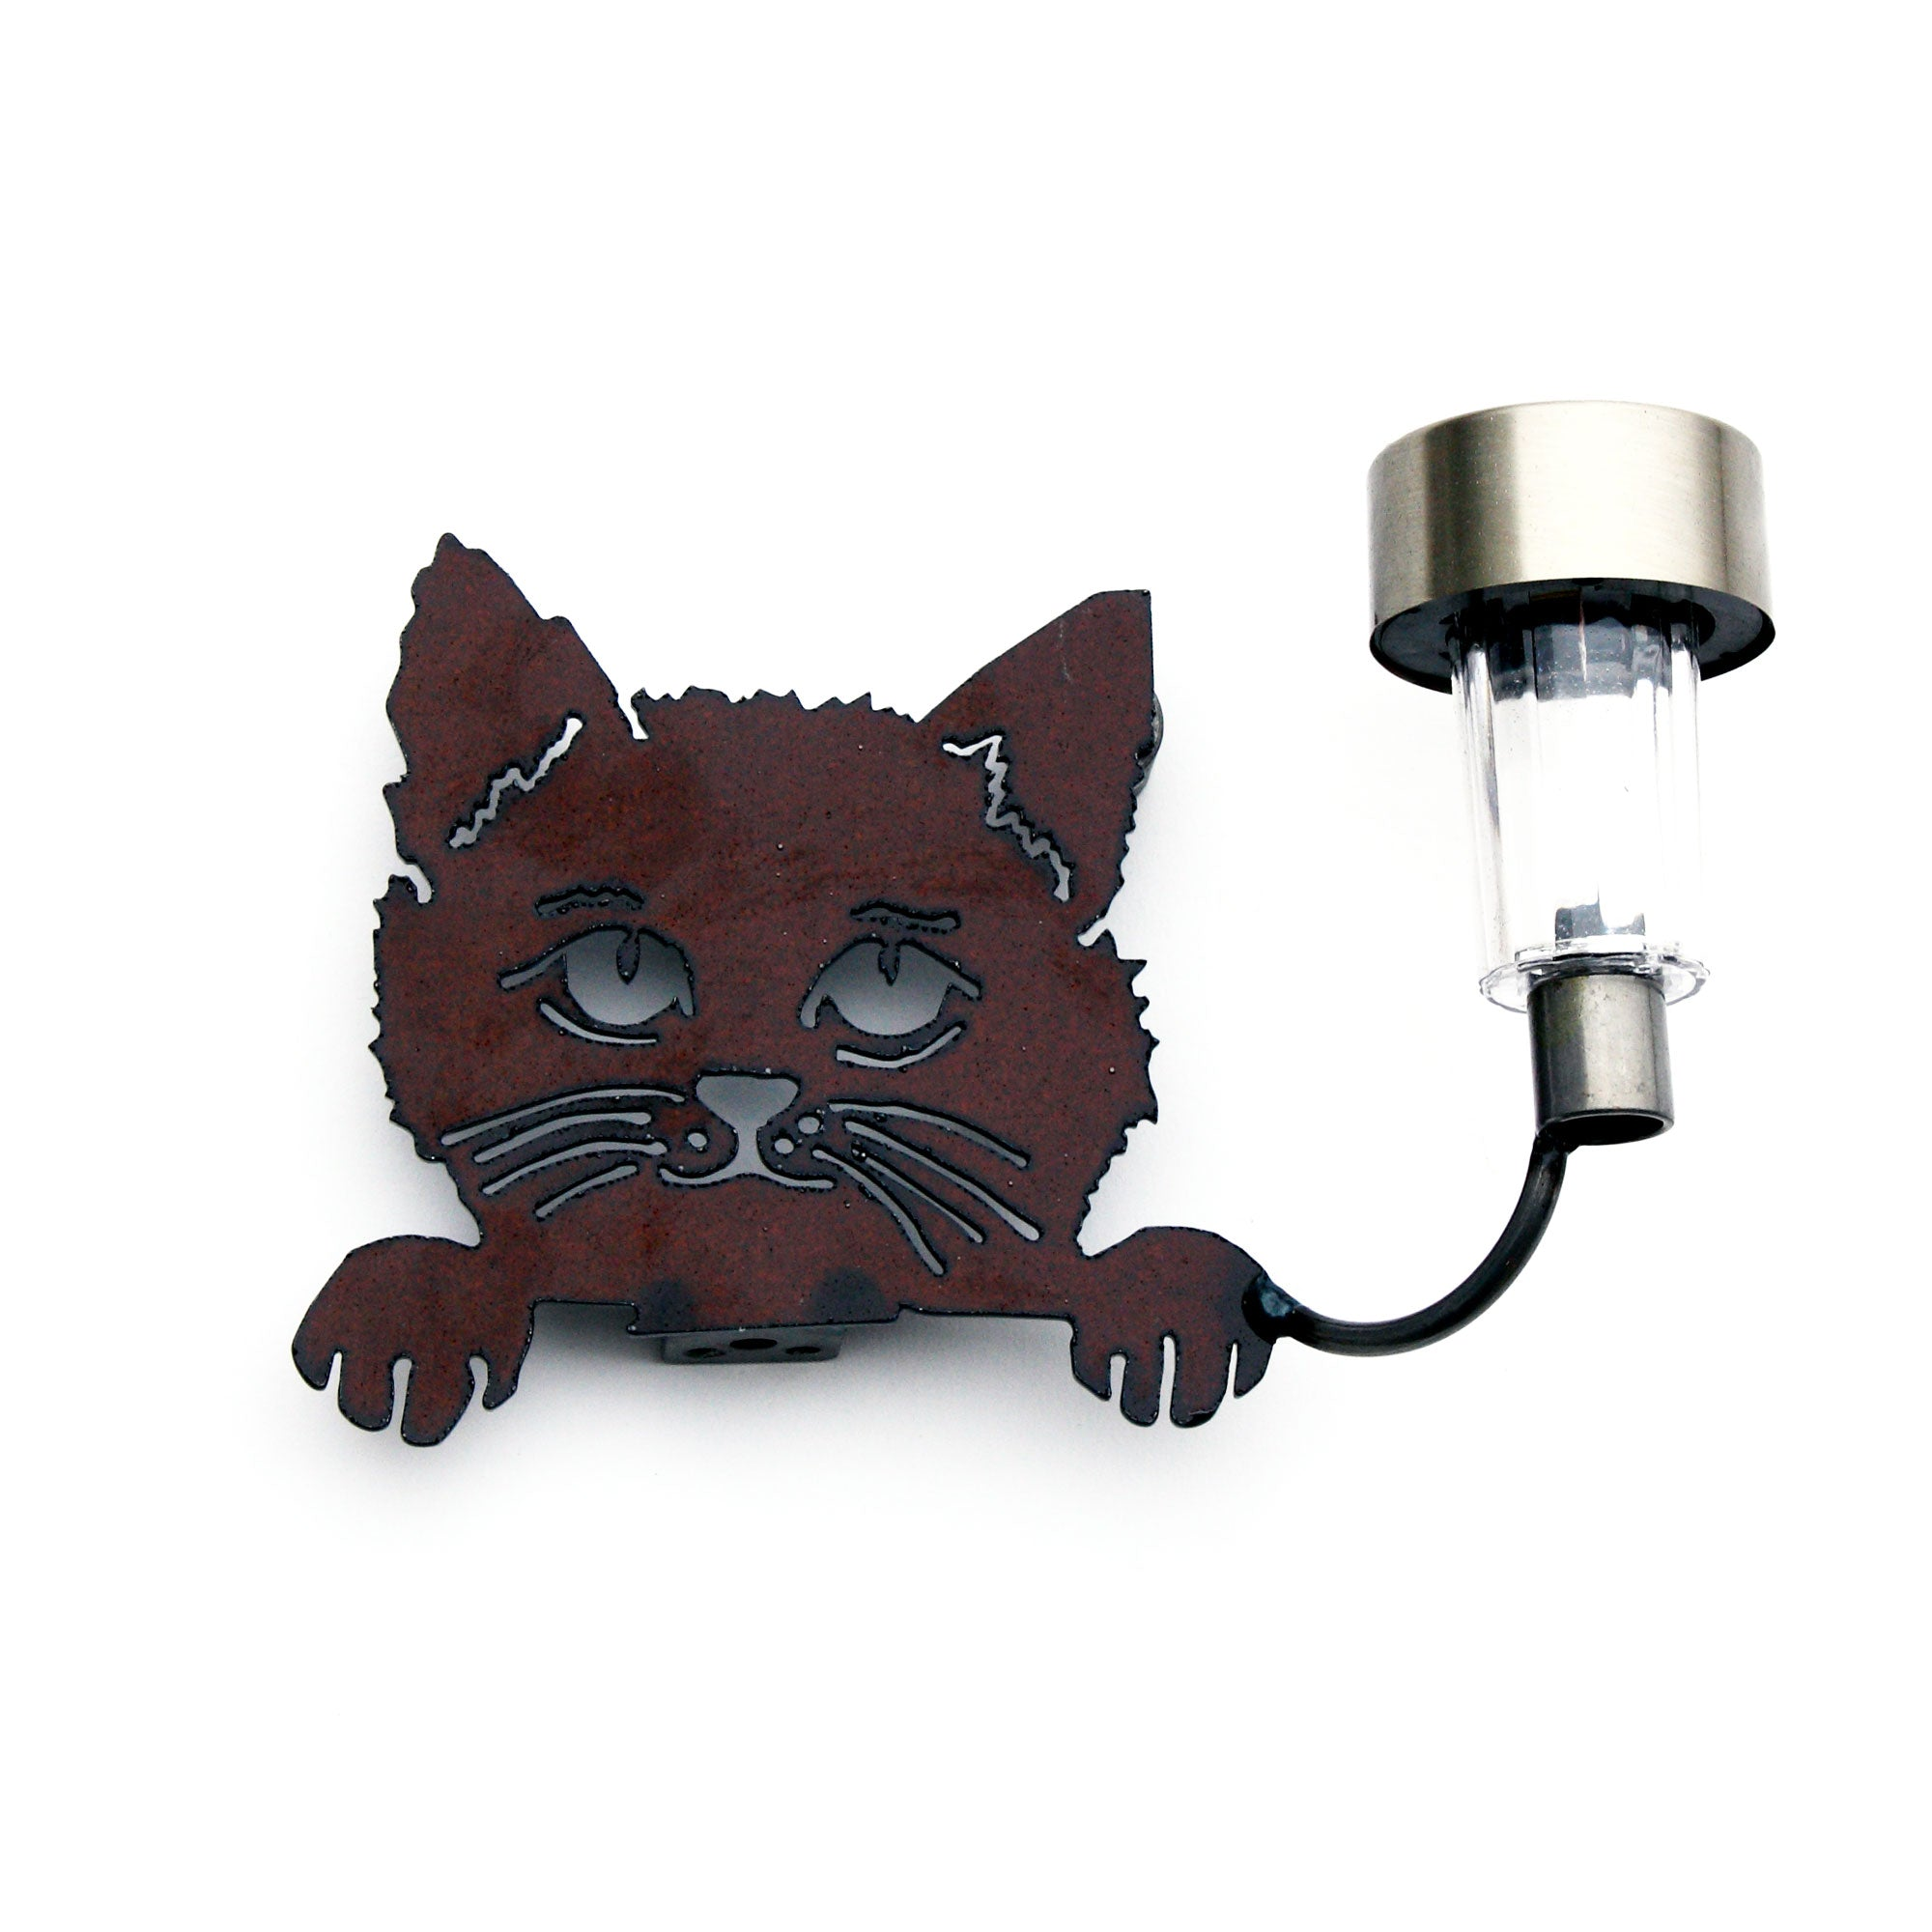 Cat with Paws – a pet for Garden and Fence Metal Wall Décor with Solar Lights